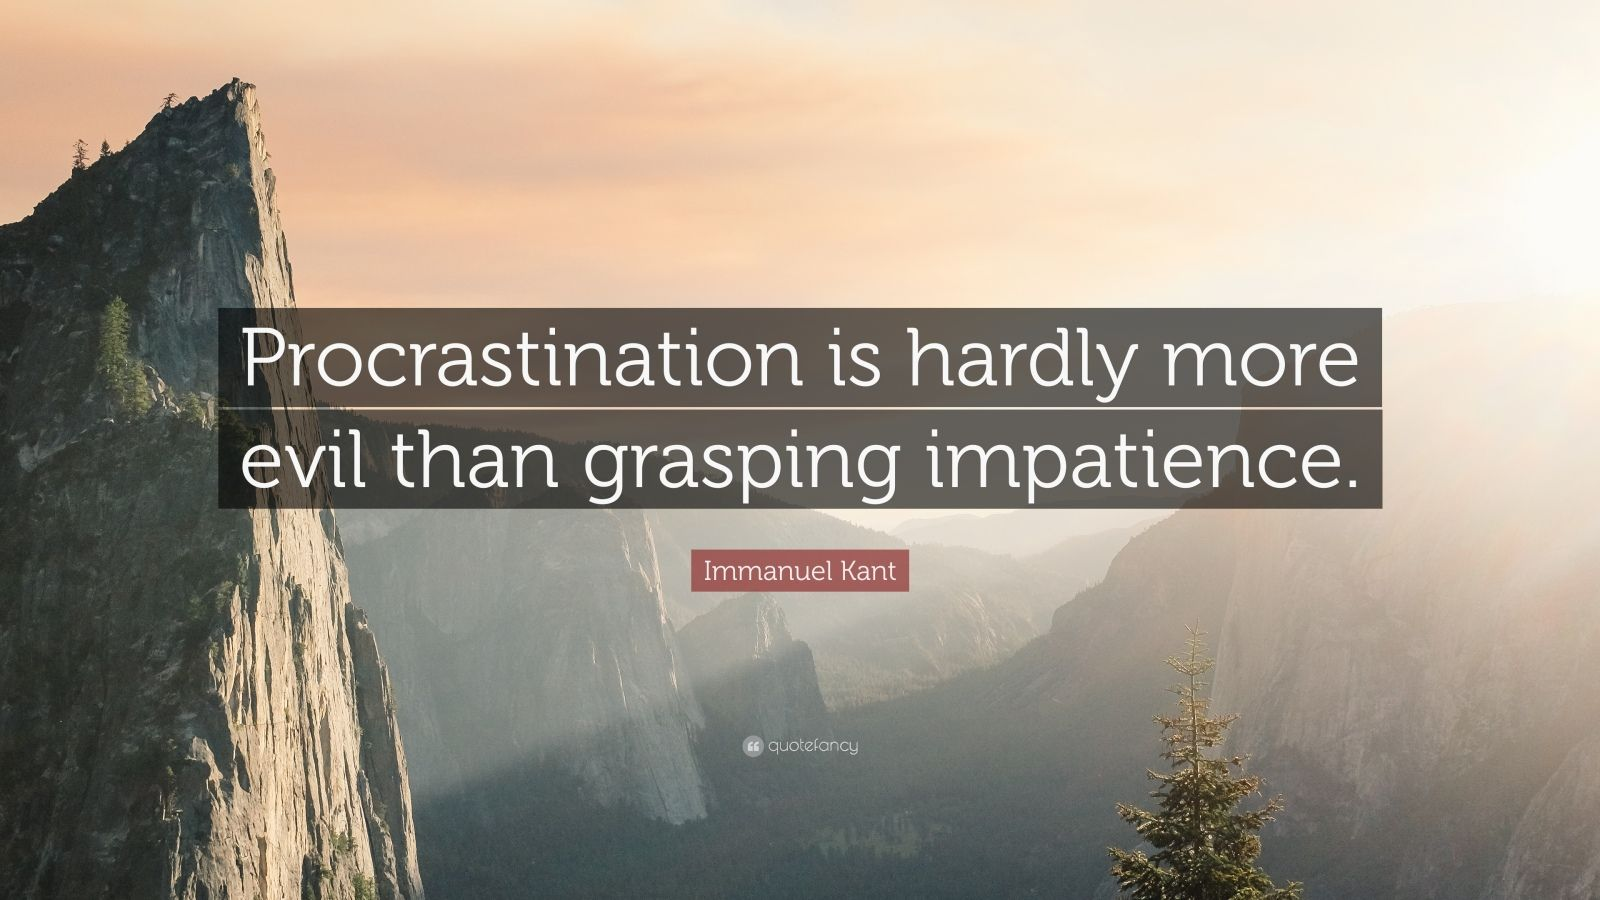 """Immanuel Kant Quote: """"Procrastination is hardly more evil than grasping impatience."""""""